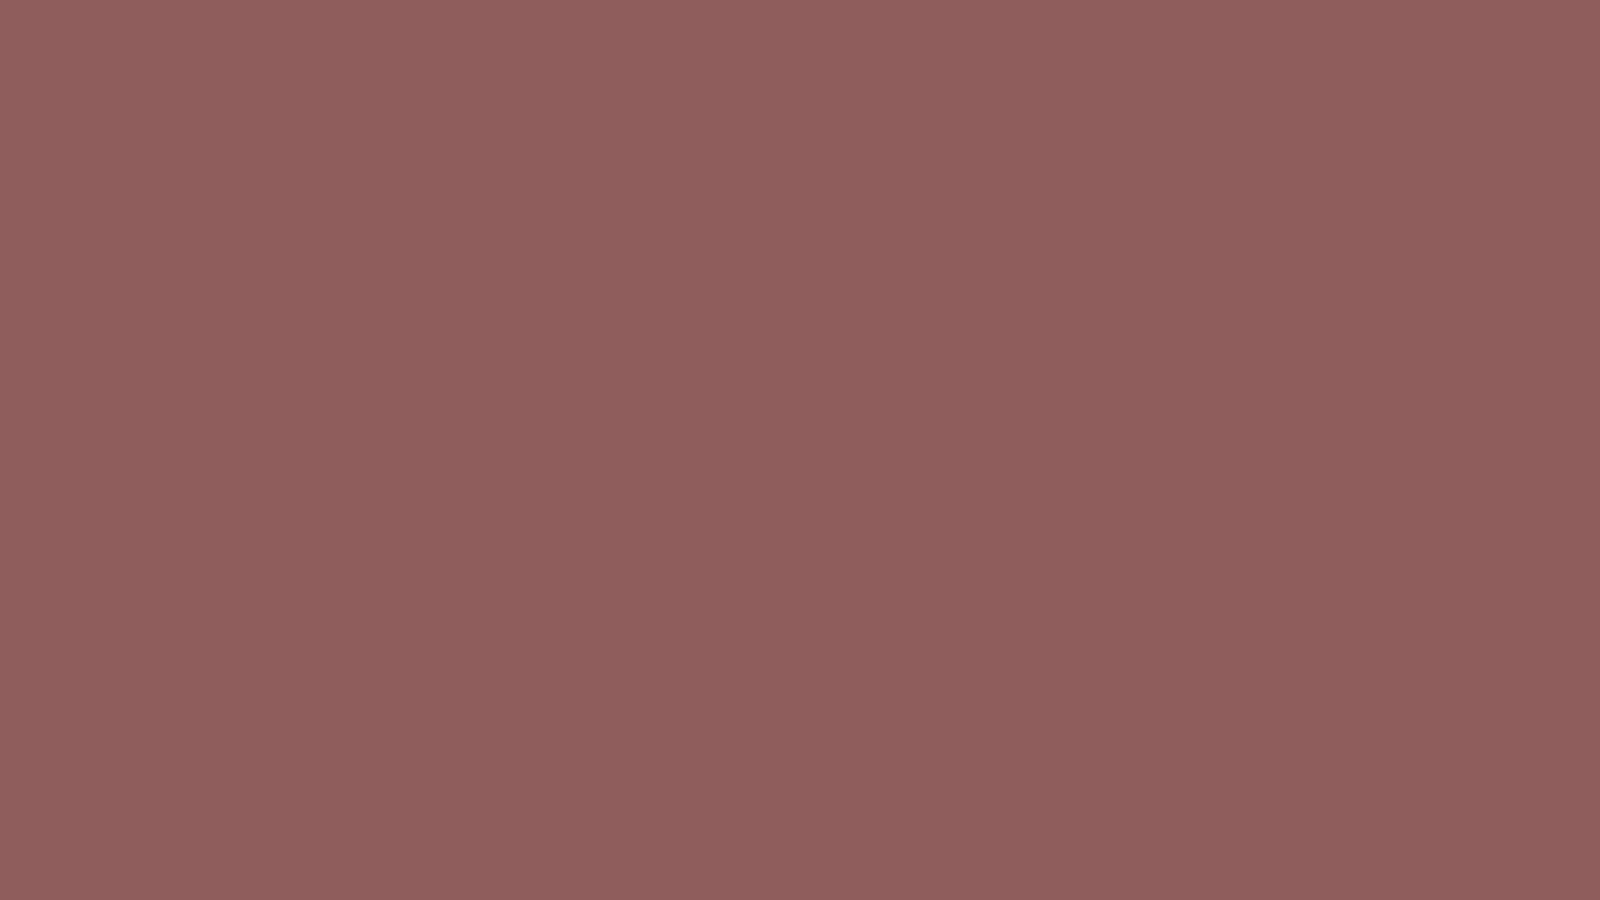 1600x900 Rose Taupe Solid Color Background